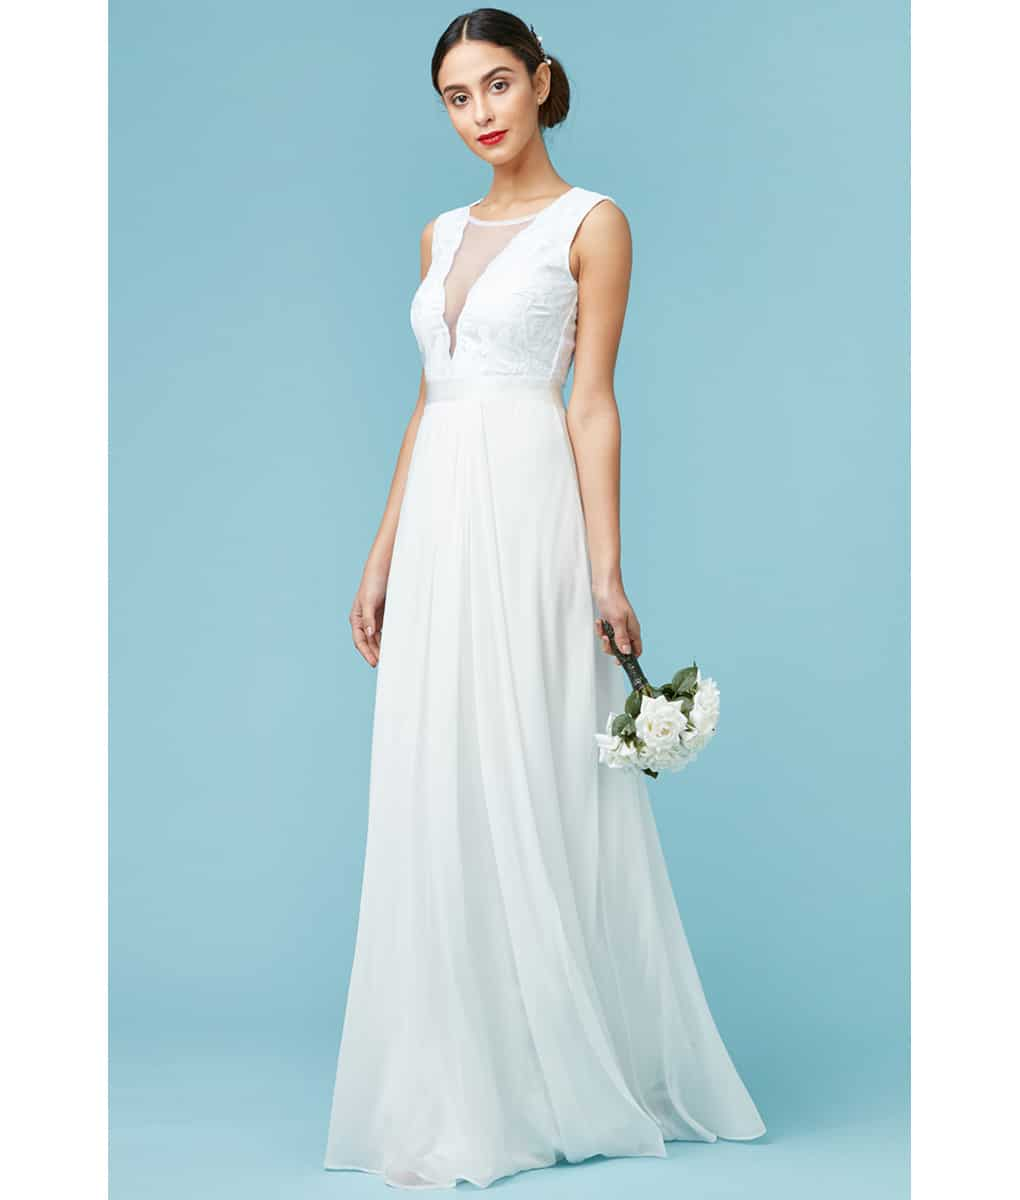 Alila-Bridal-Gown-City-Goddess